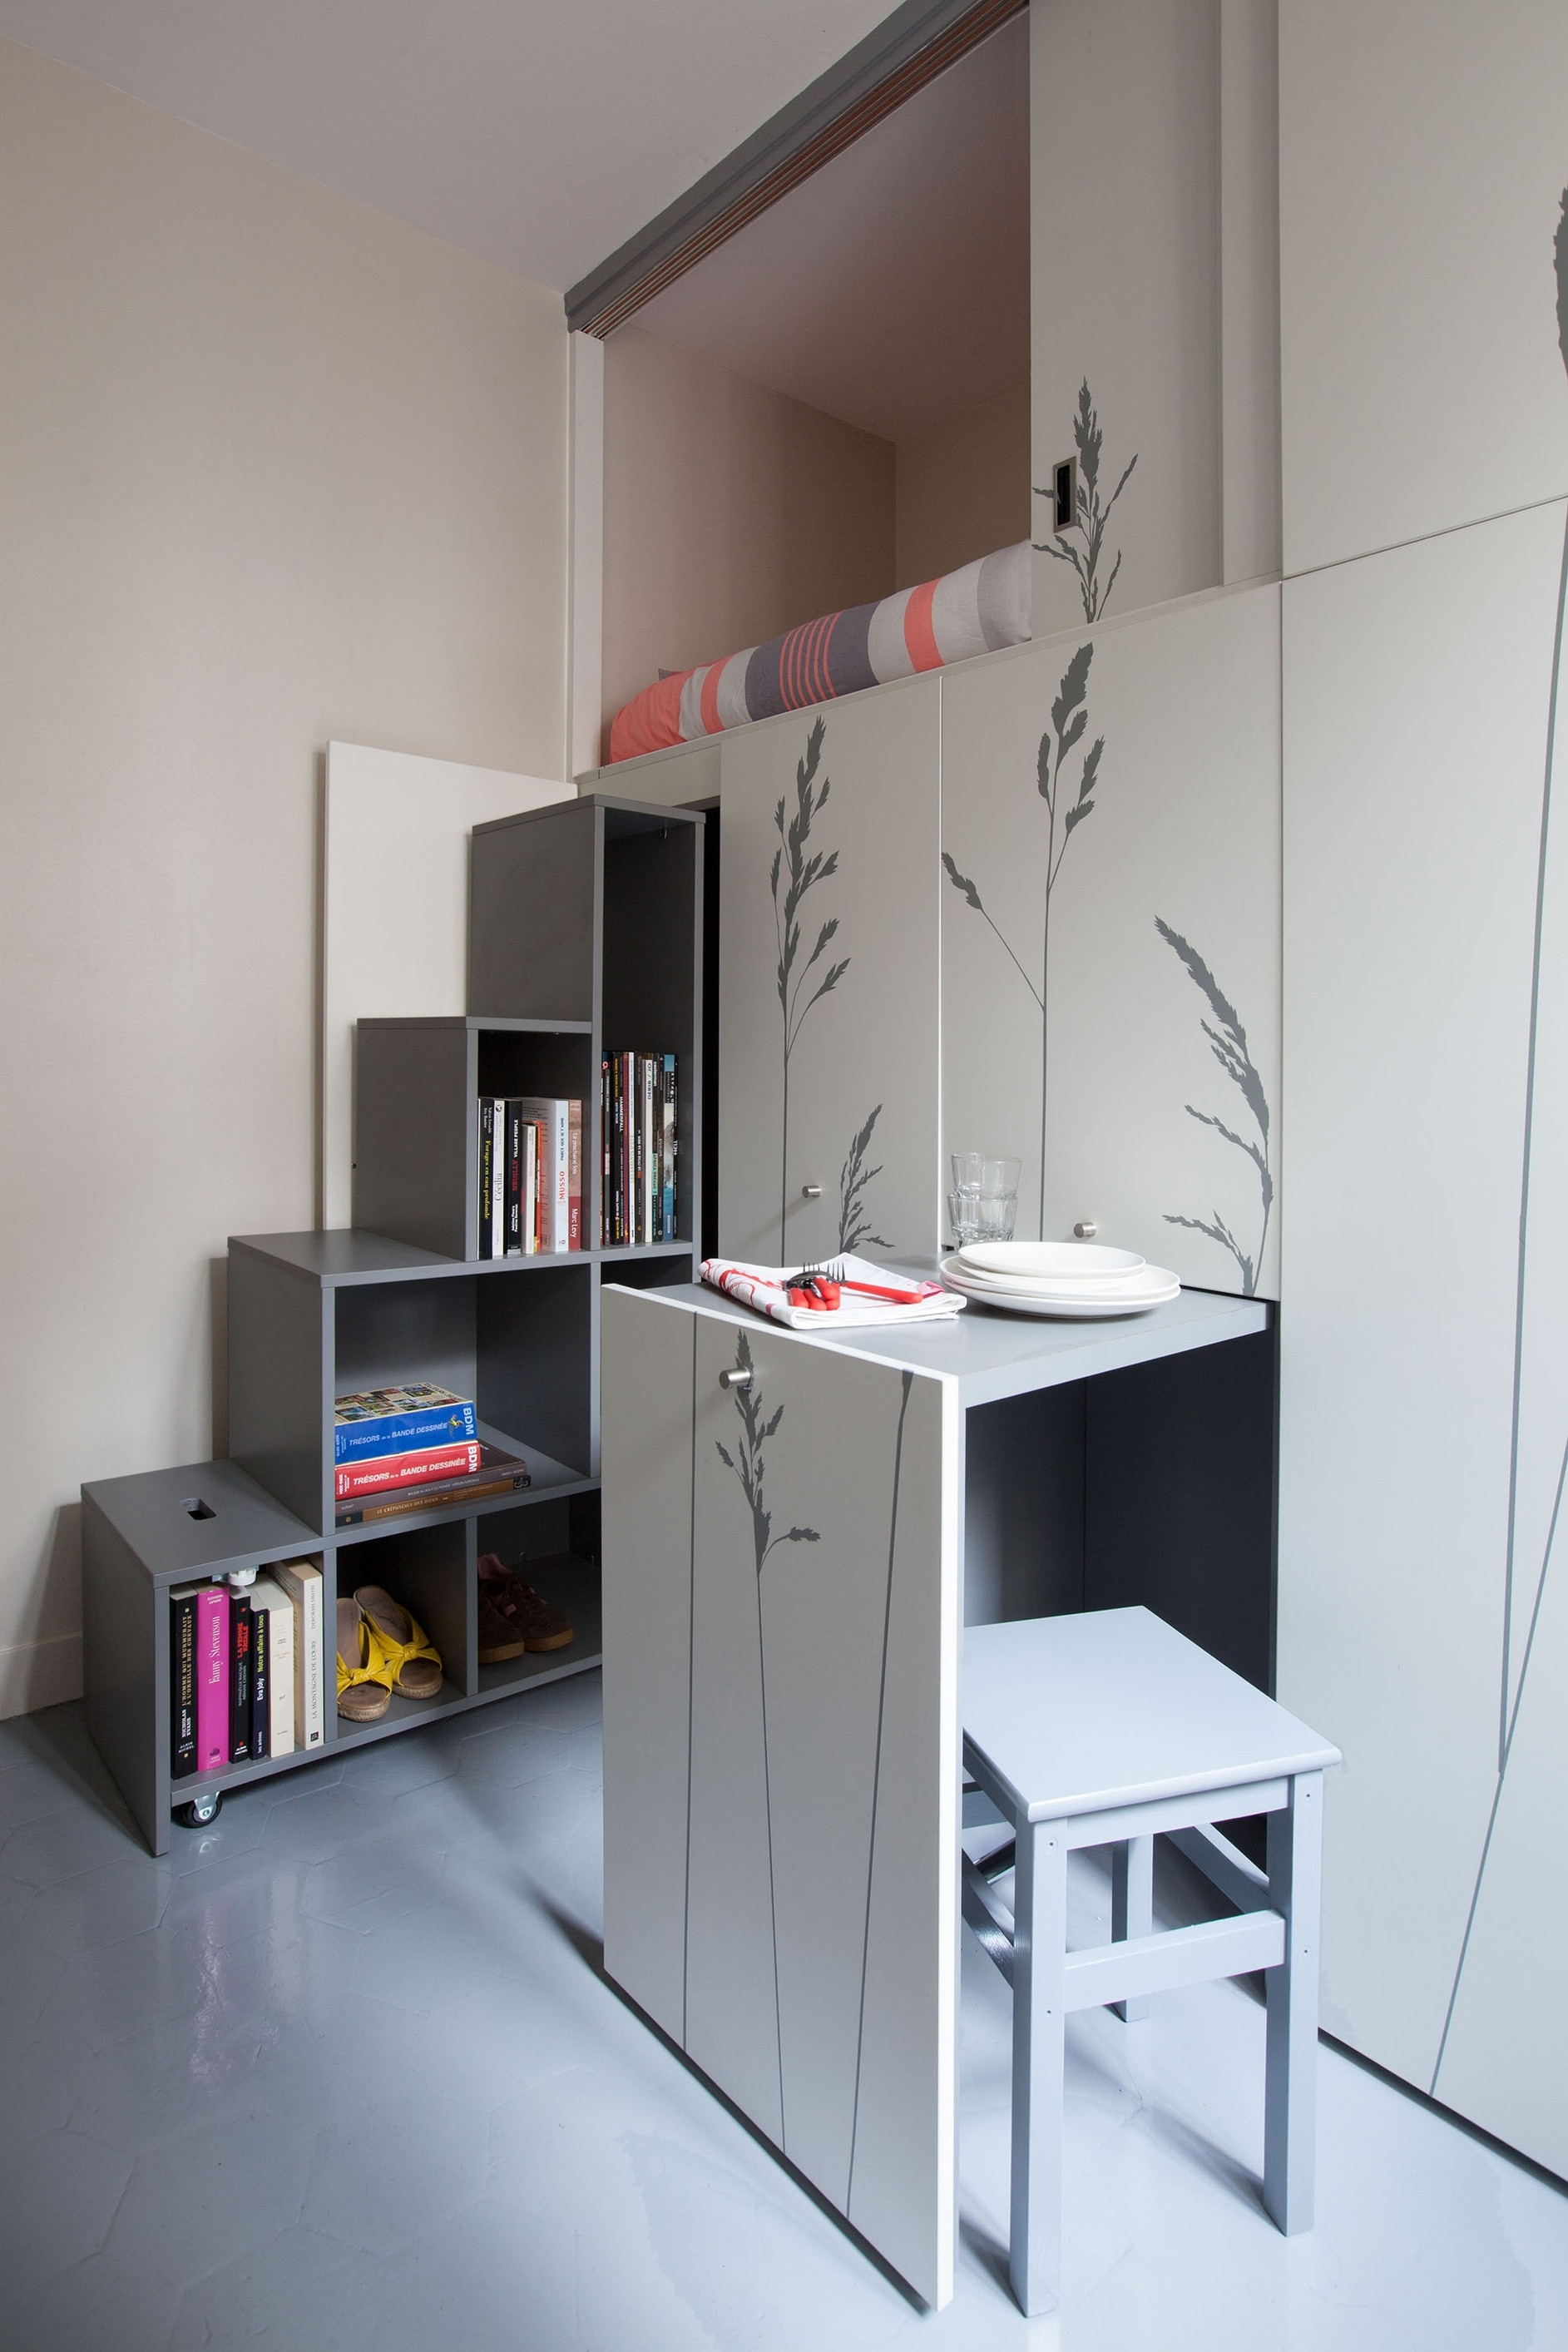 Tiny apartment in paris by kitoko studio karmatrendz for Small studio apartment space